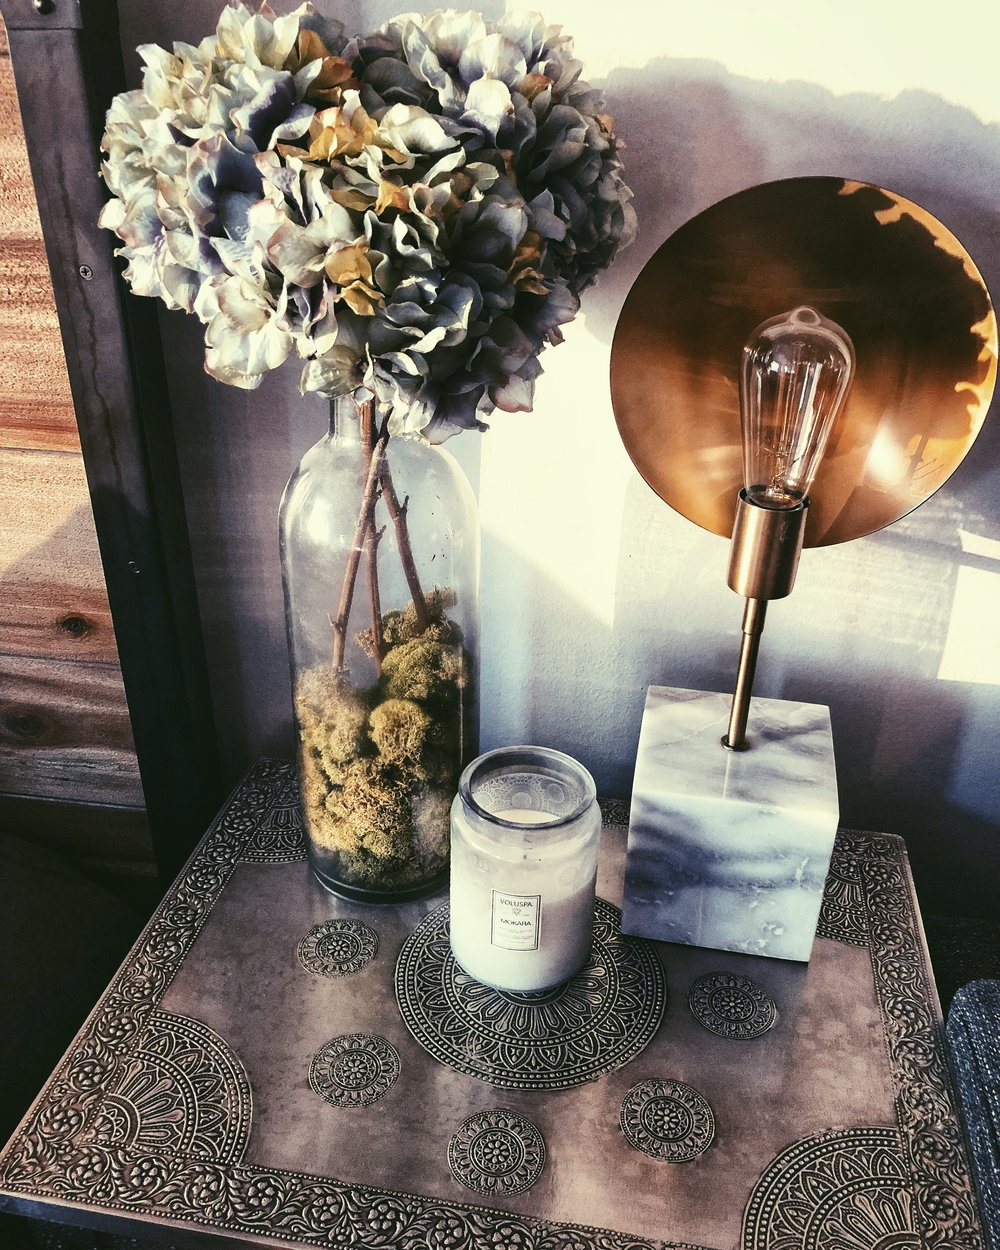 Rustic home decor bedside table with faux flowers, home fragrance, and Edison bulb lamp.